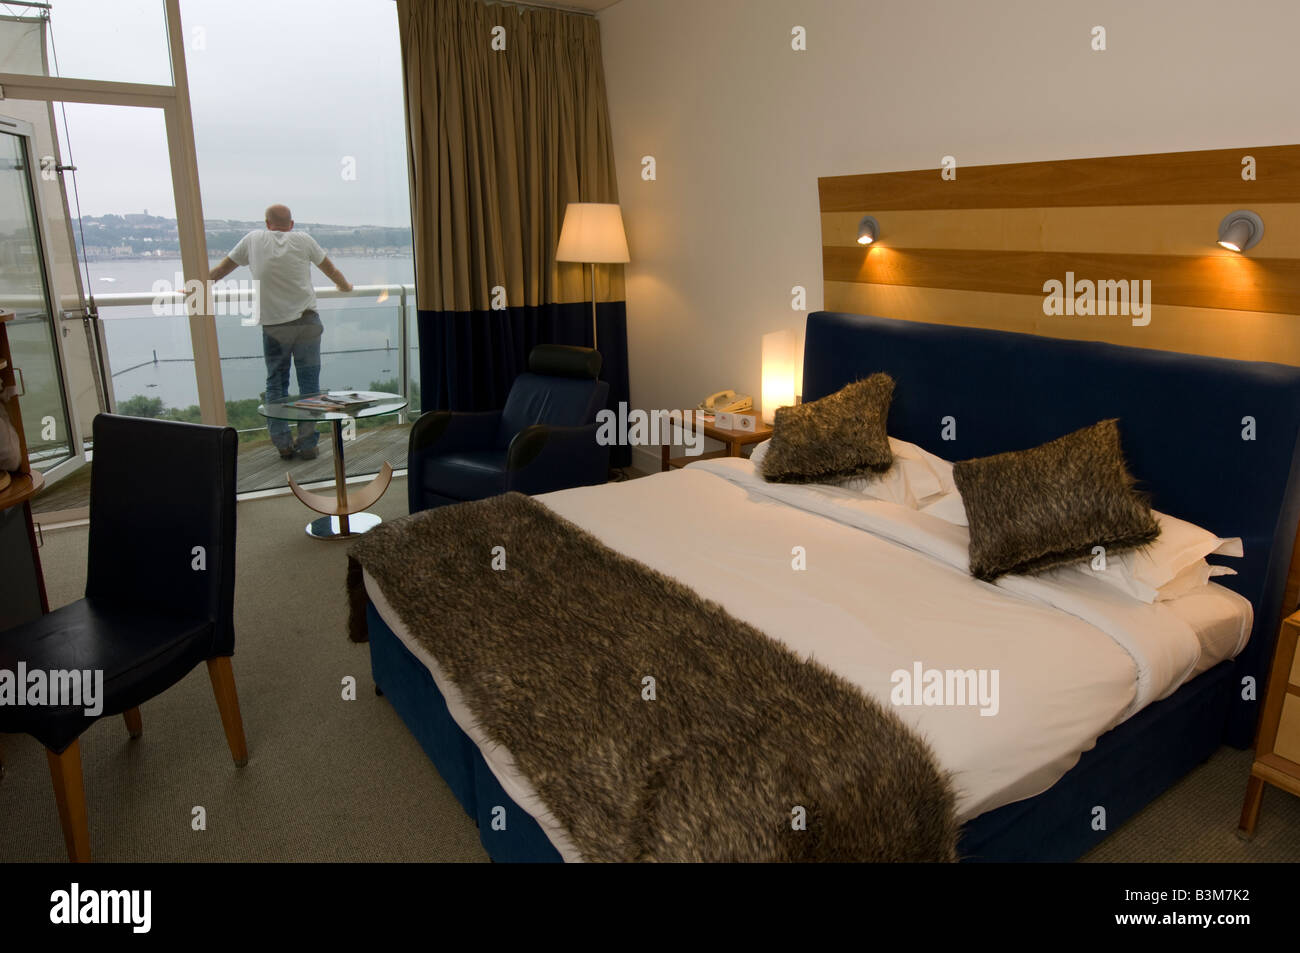 Bedroom at the St Davids luxury 5 star hotel Cardiff bay Wales UK - man standing on balcony looking at the view - Stock Image